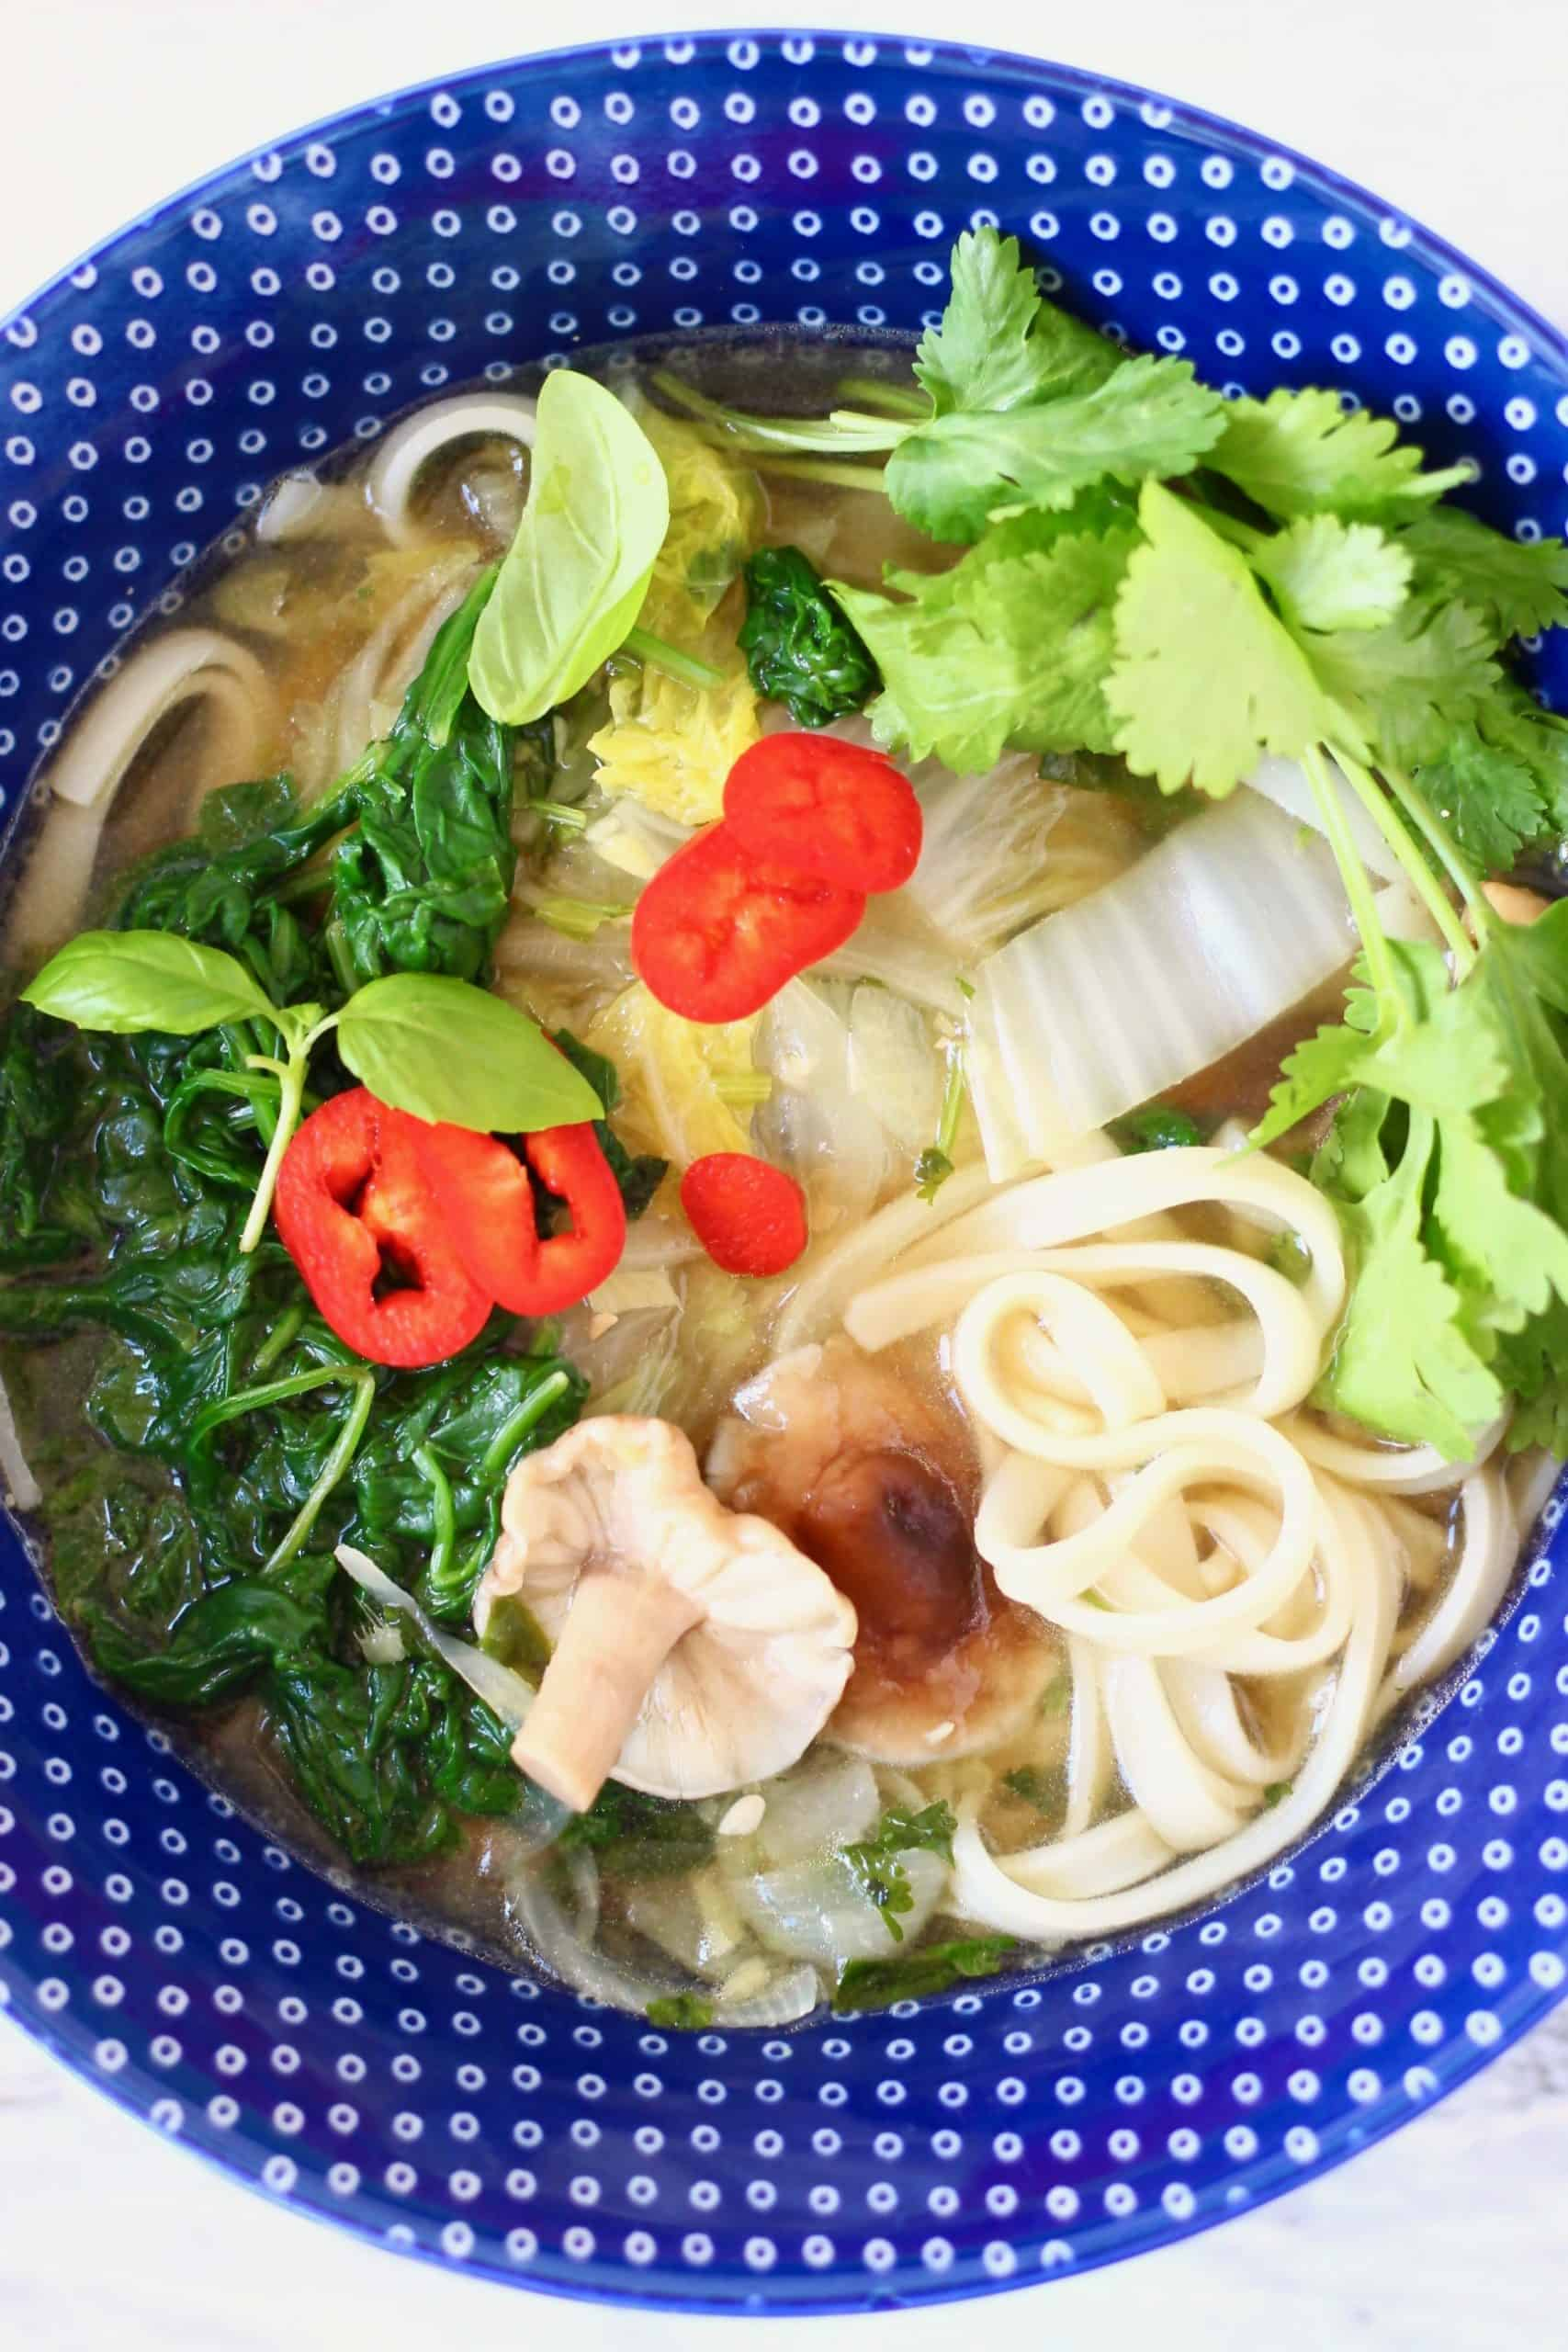 Vegan pho with vegetables in a blue bowl